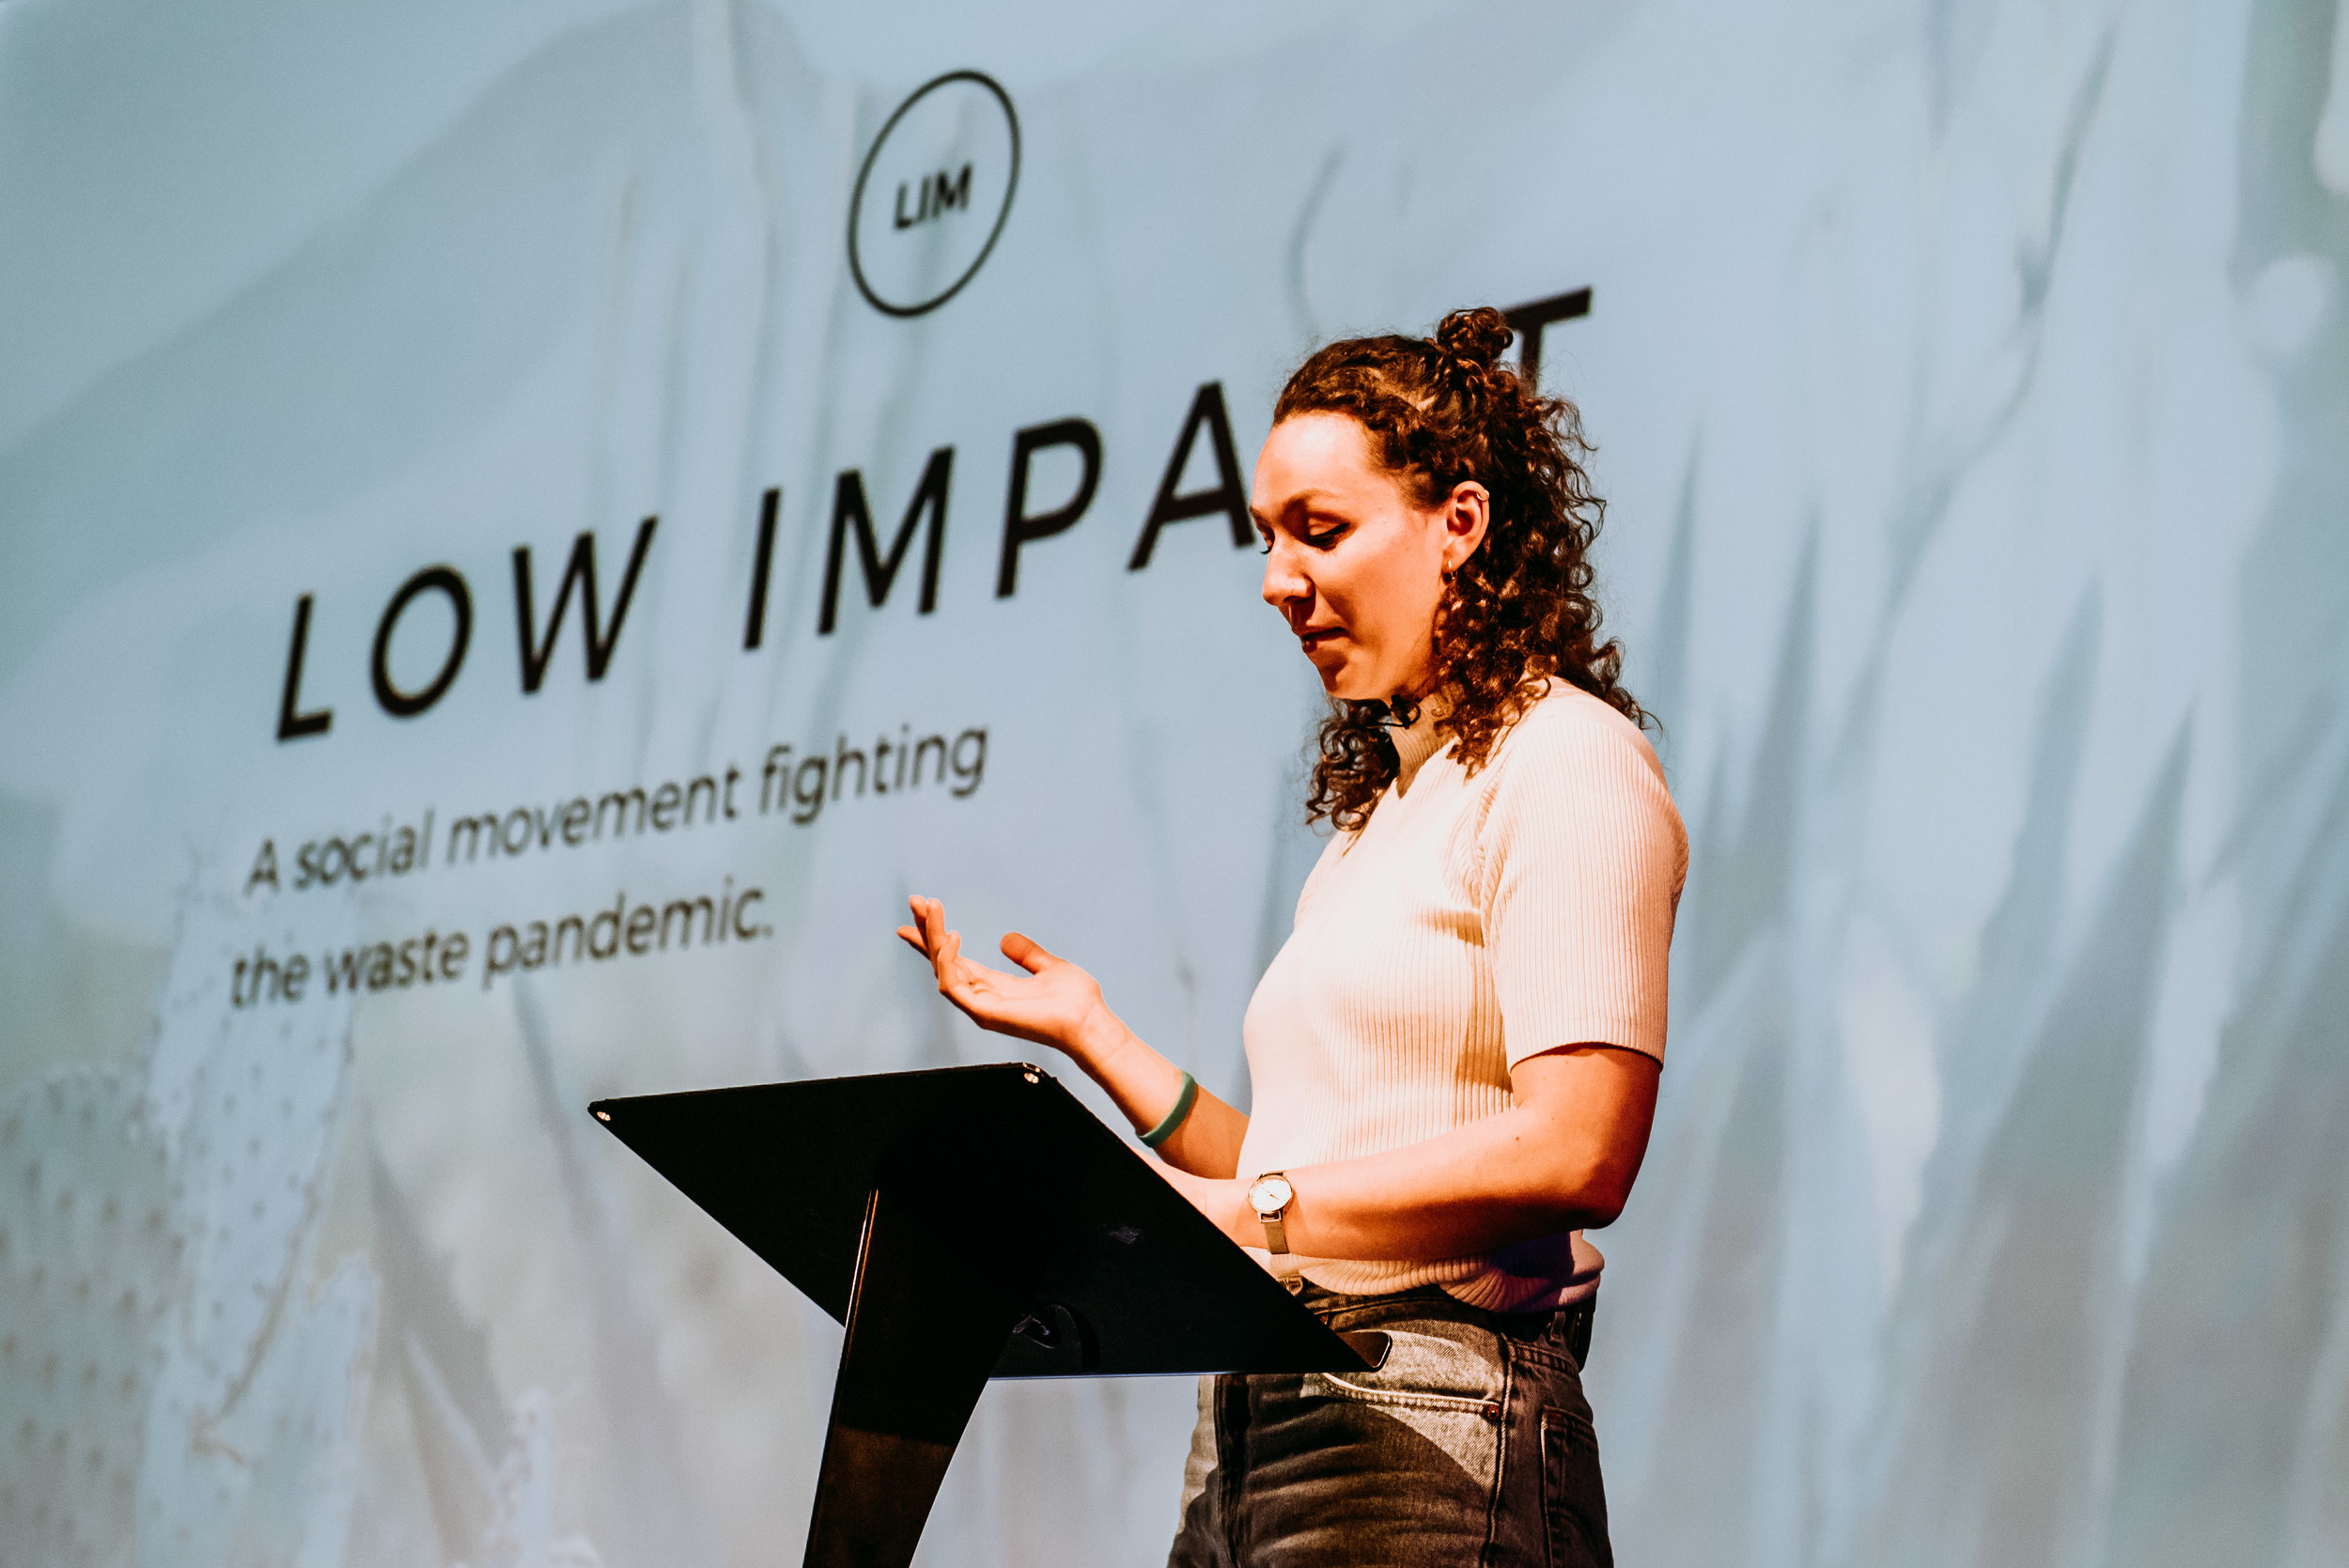 Immy Lucas talking about low impact living